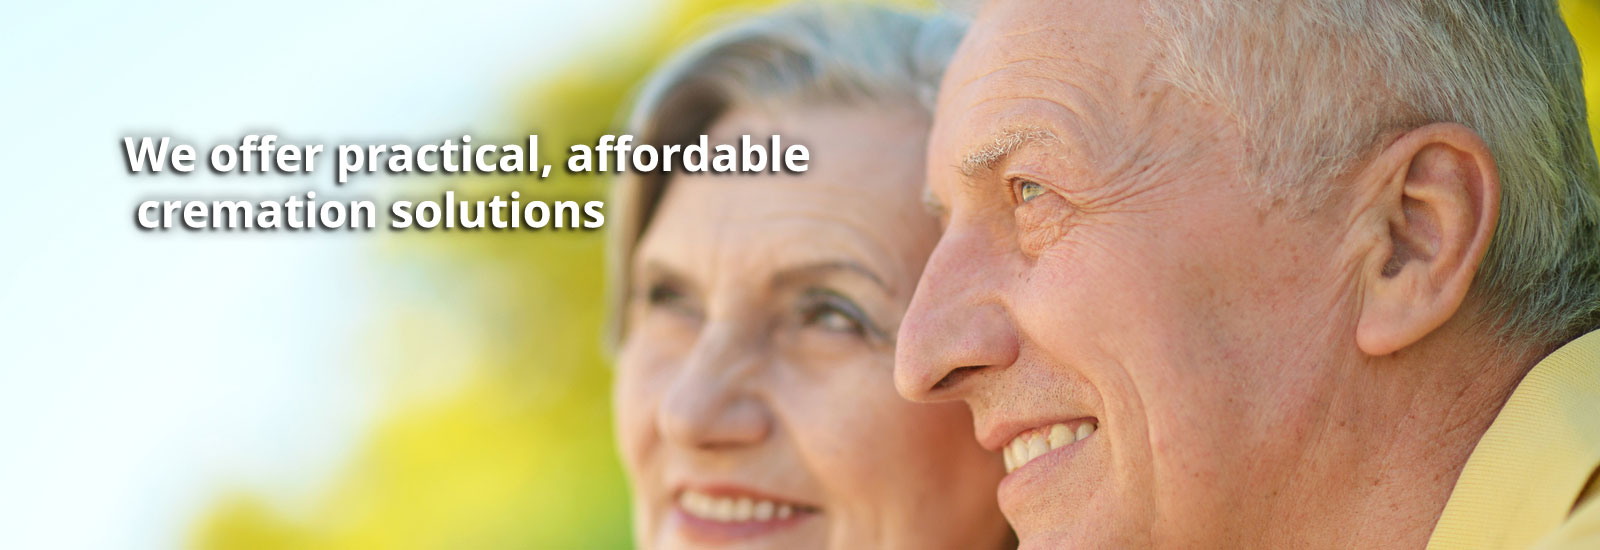 We offer practical, affordable cremation solutions